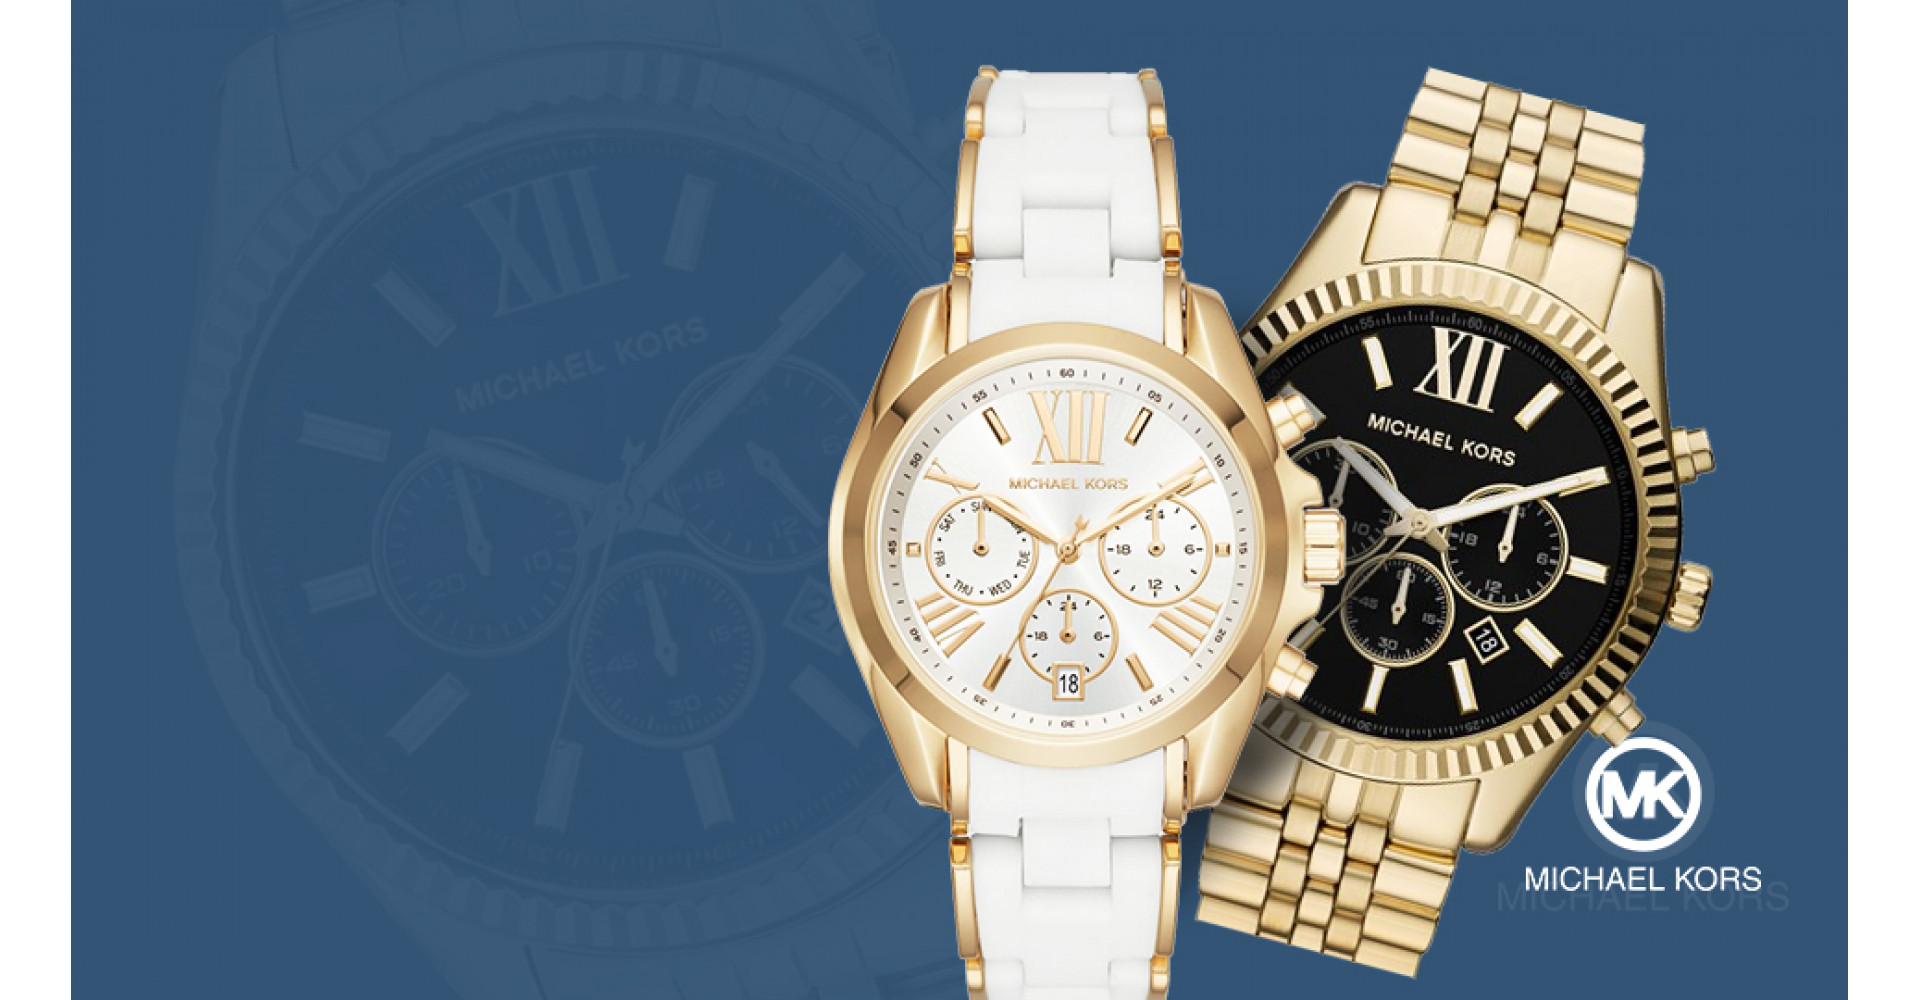 MICHEL KORS Watch Sale -70%